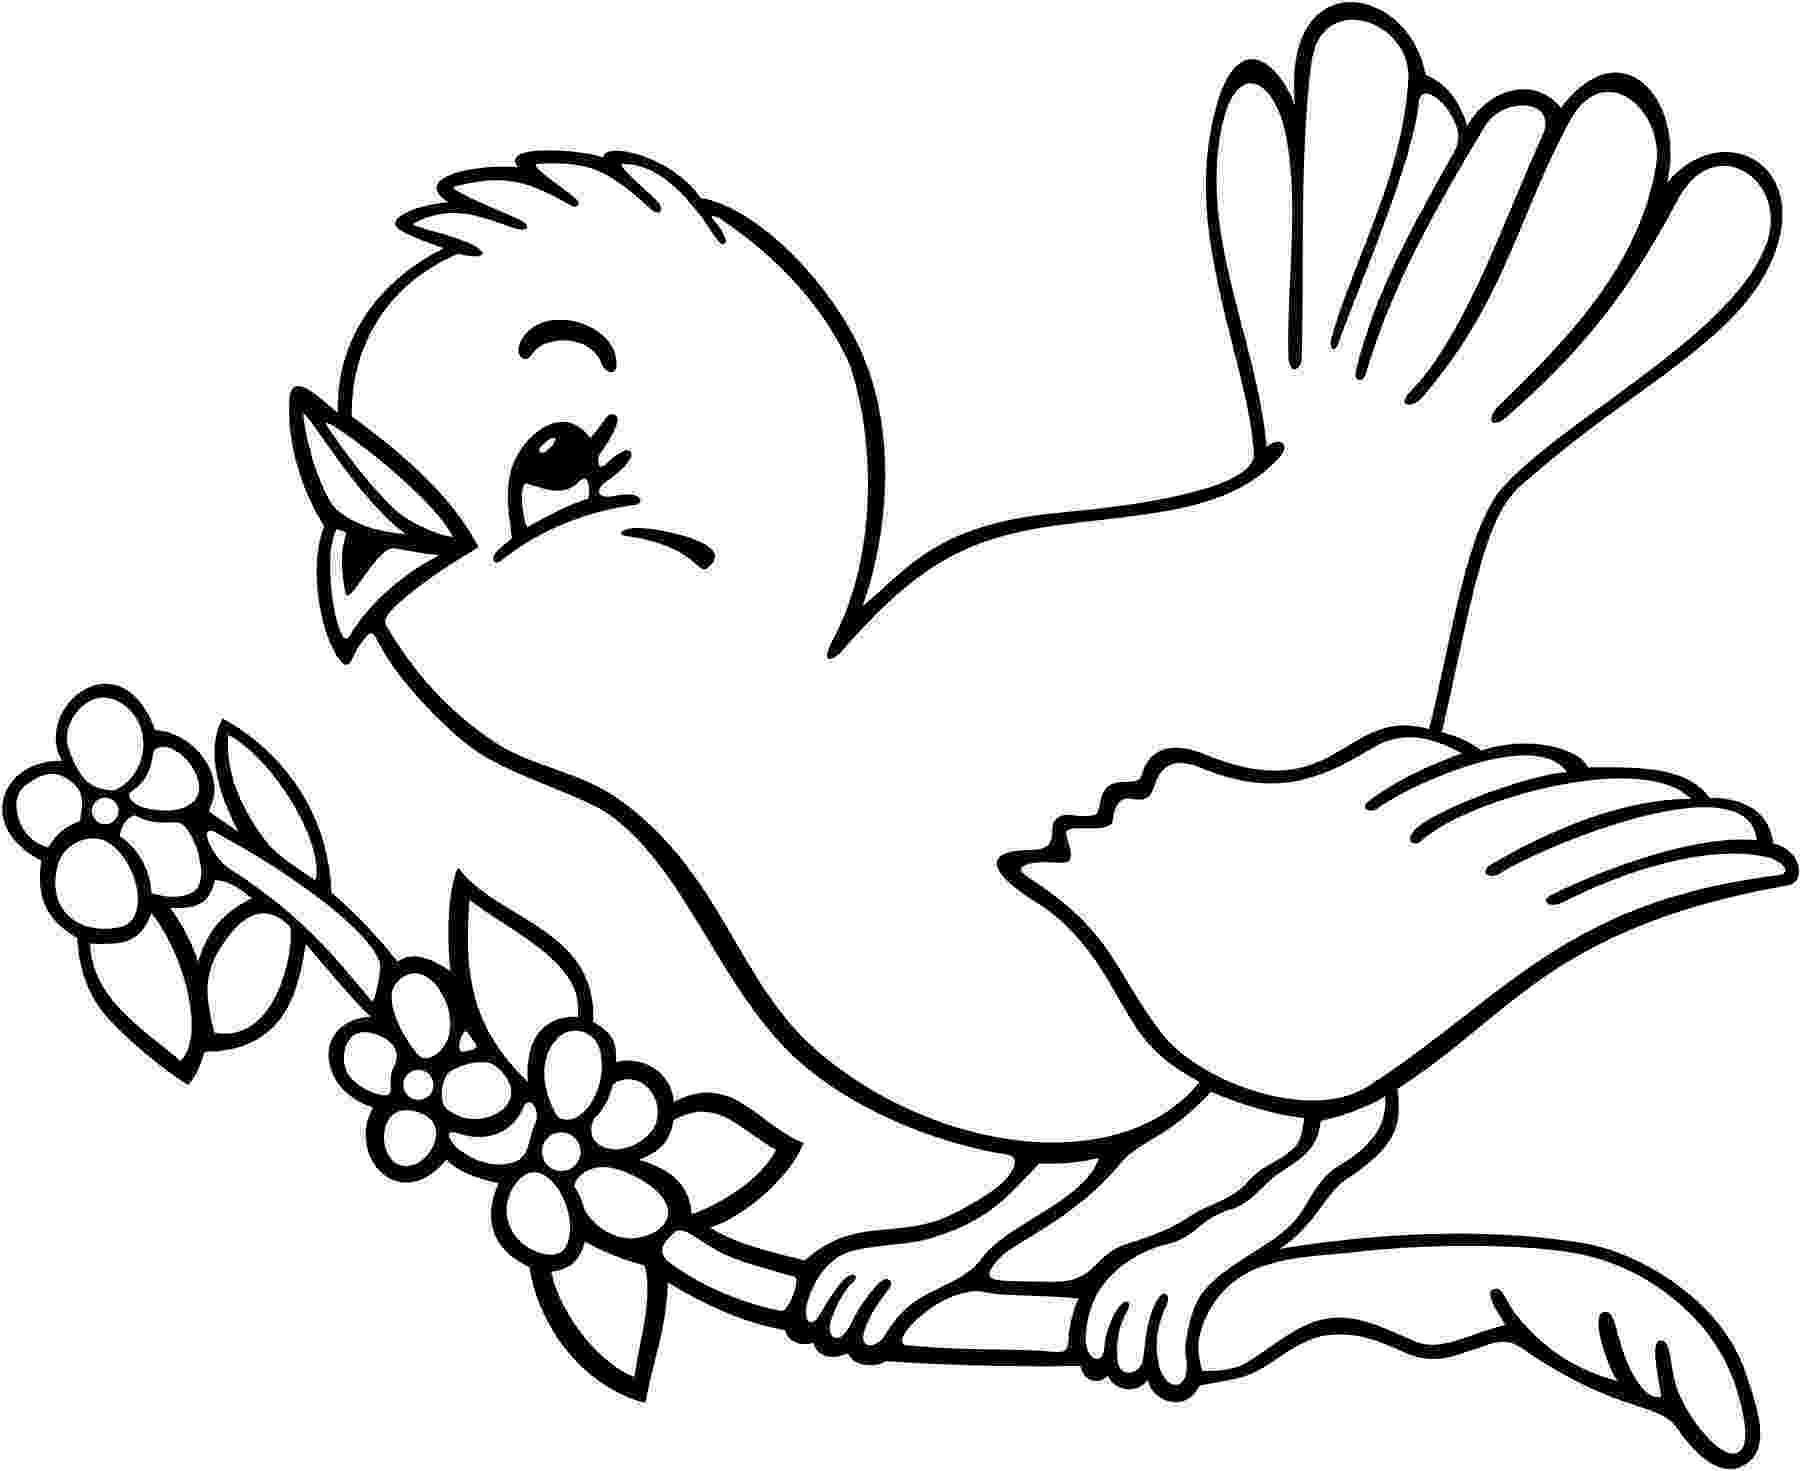 printable bird coloring pages blue jay bird coloring page free printable coloring pages printable coloring bird pages